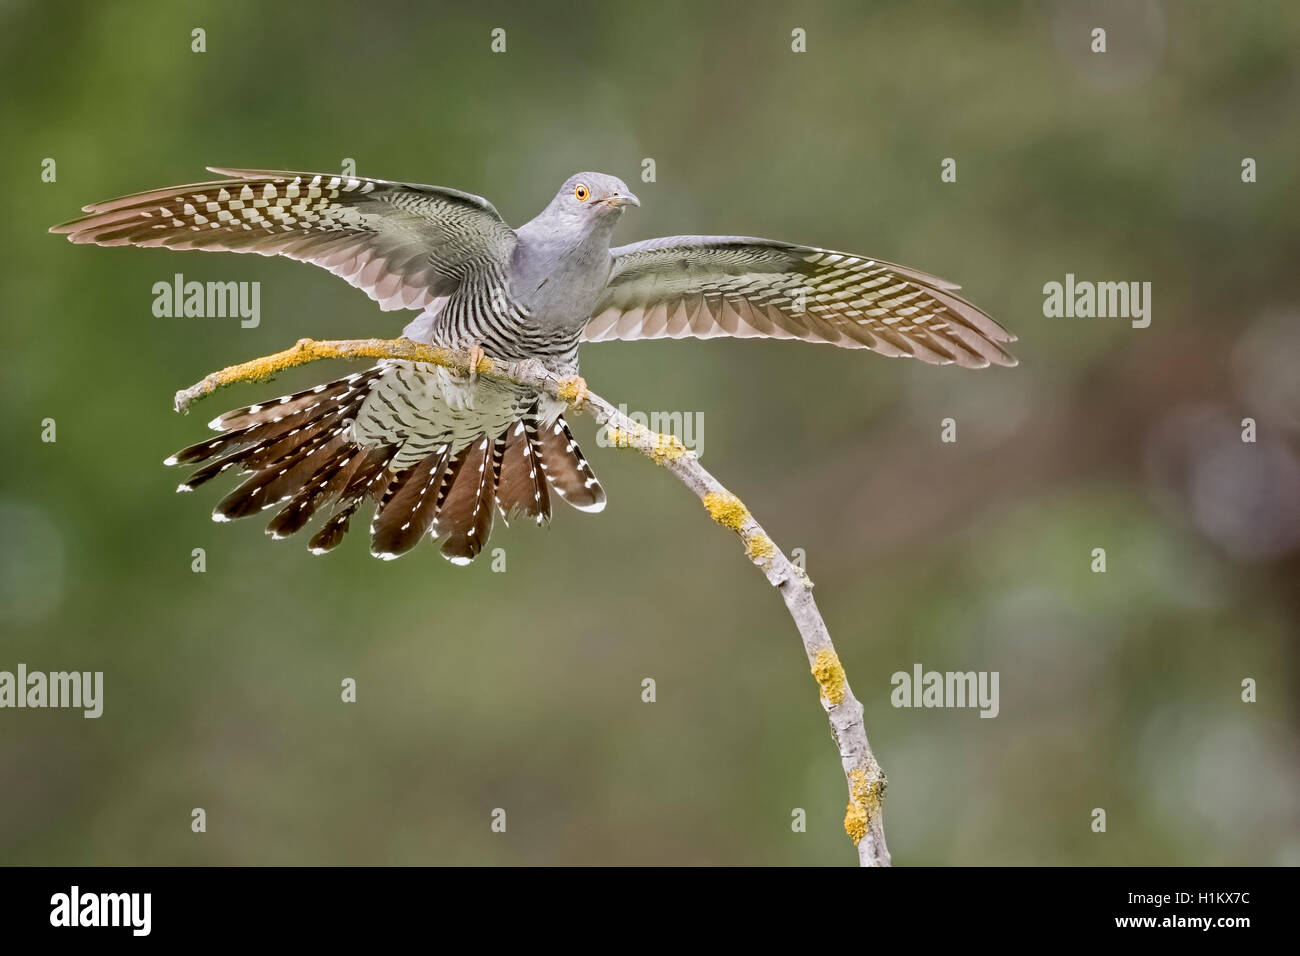 Common cuckoo (Cuculus canorus), with spread wings, on a branch, Middle Elbe Biosphere Reserve, Saxony-Anhalt, Germany - Stock Image